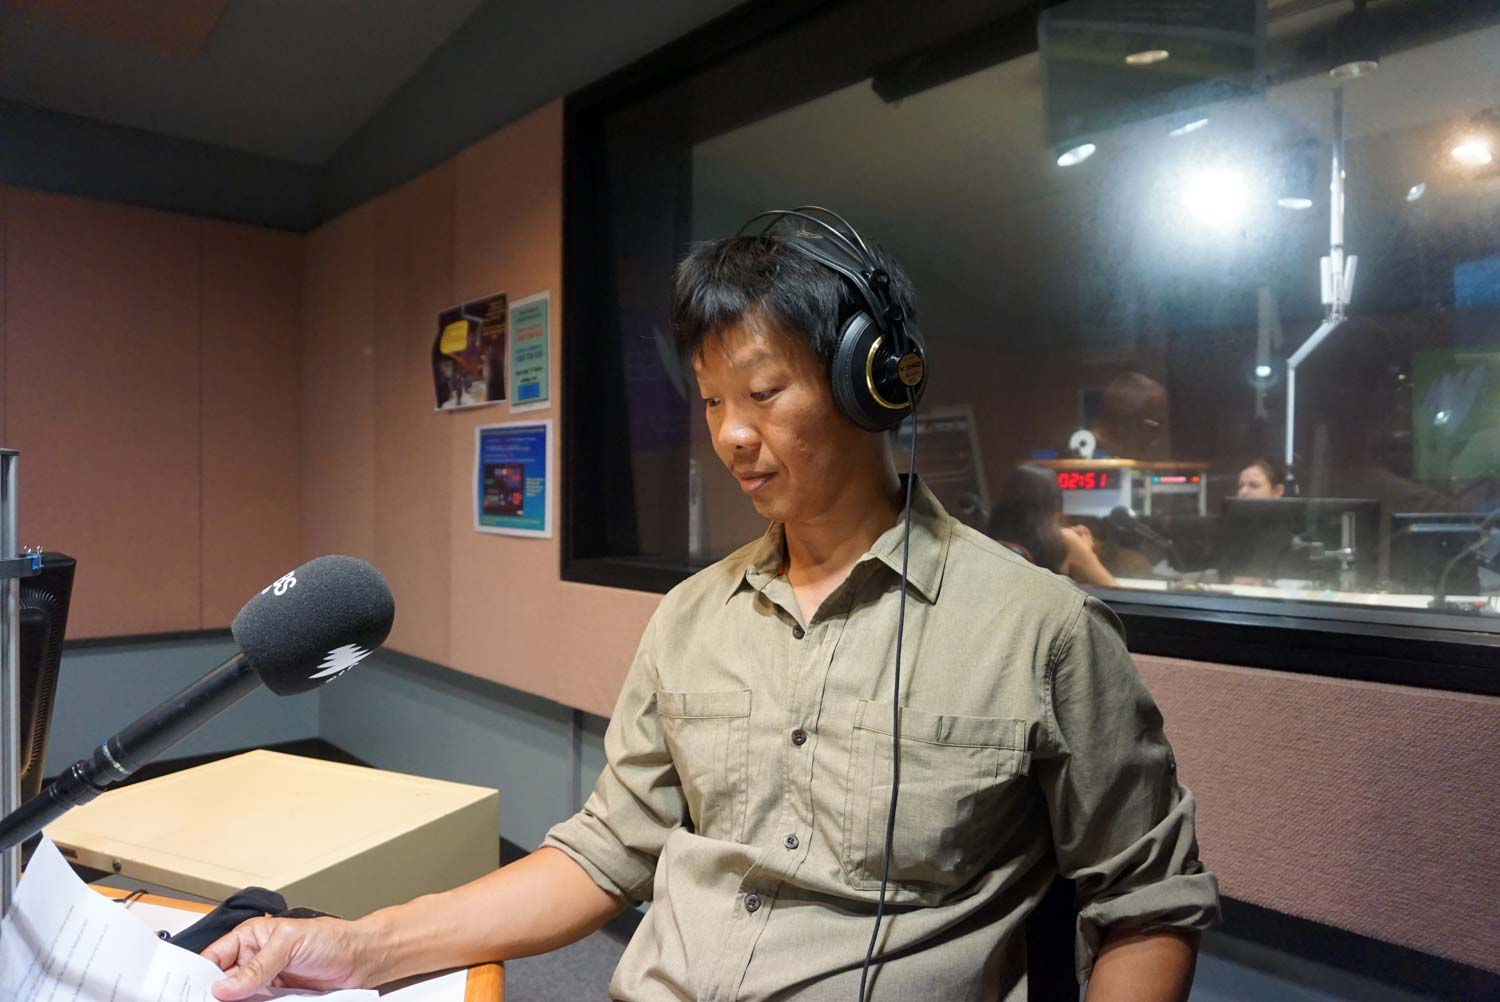 Anthony Tan, a long-time contributor to Cycling Central (and various other cycling media).